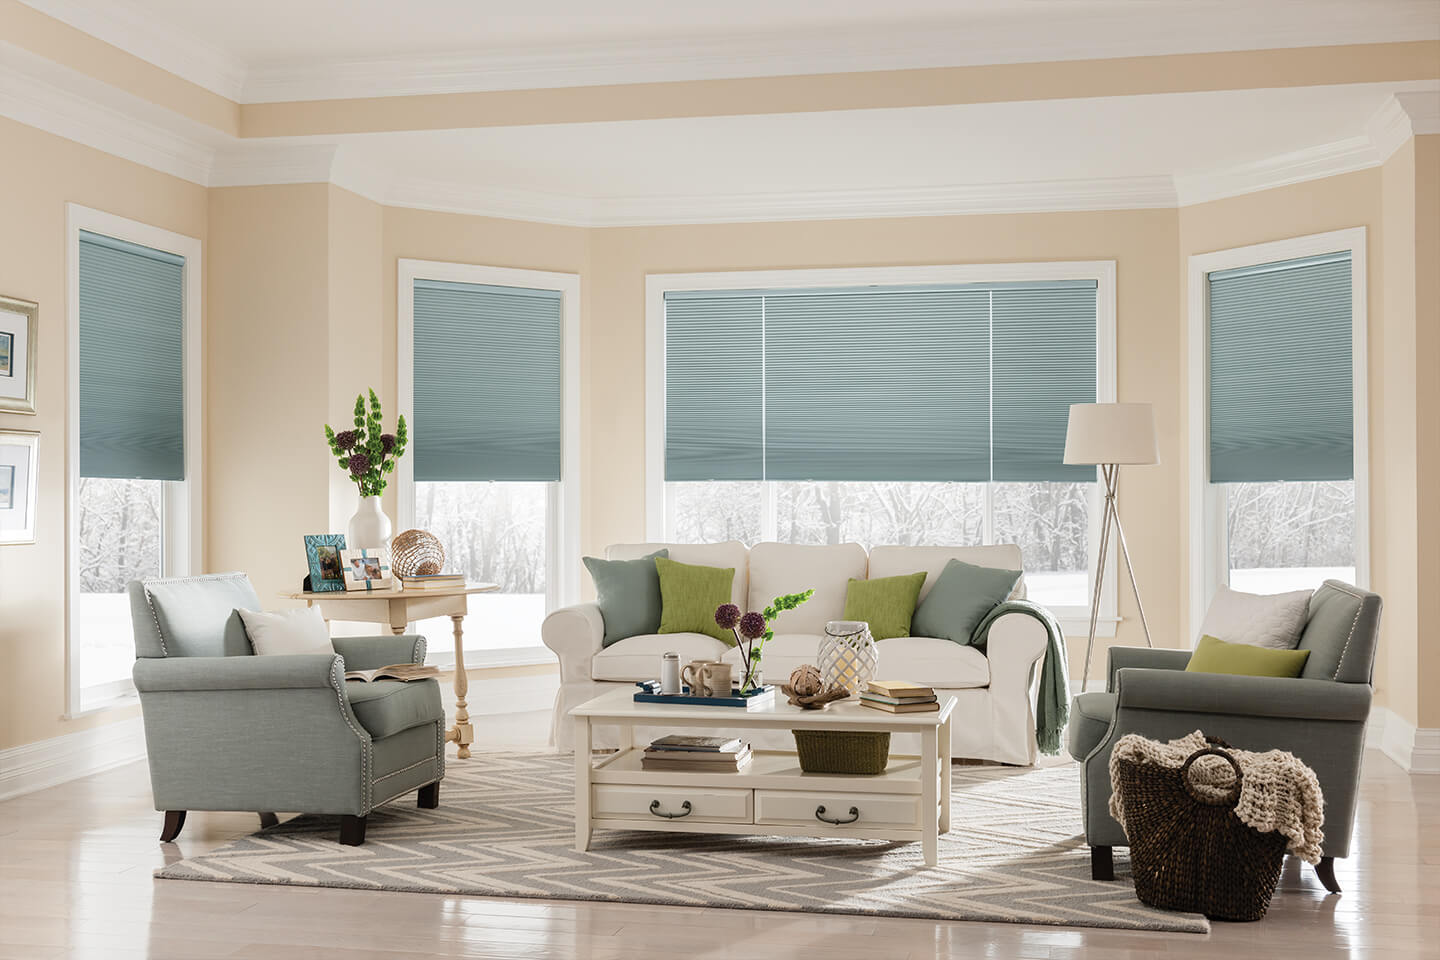 Cellular shades troubleshooting bali blinds and shades for Bali blinds